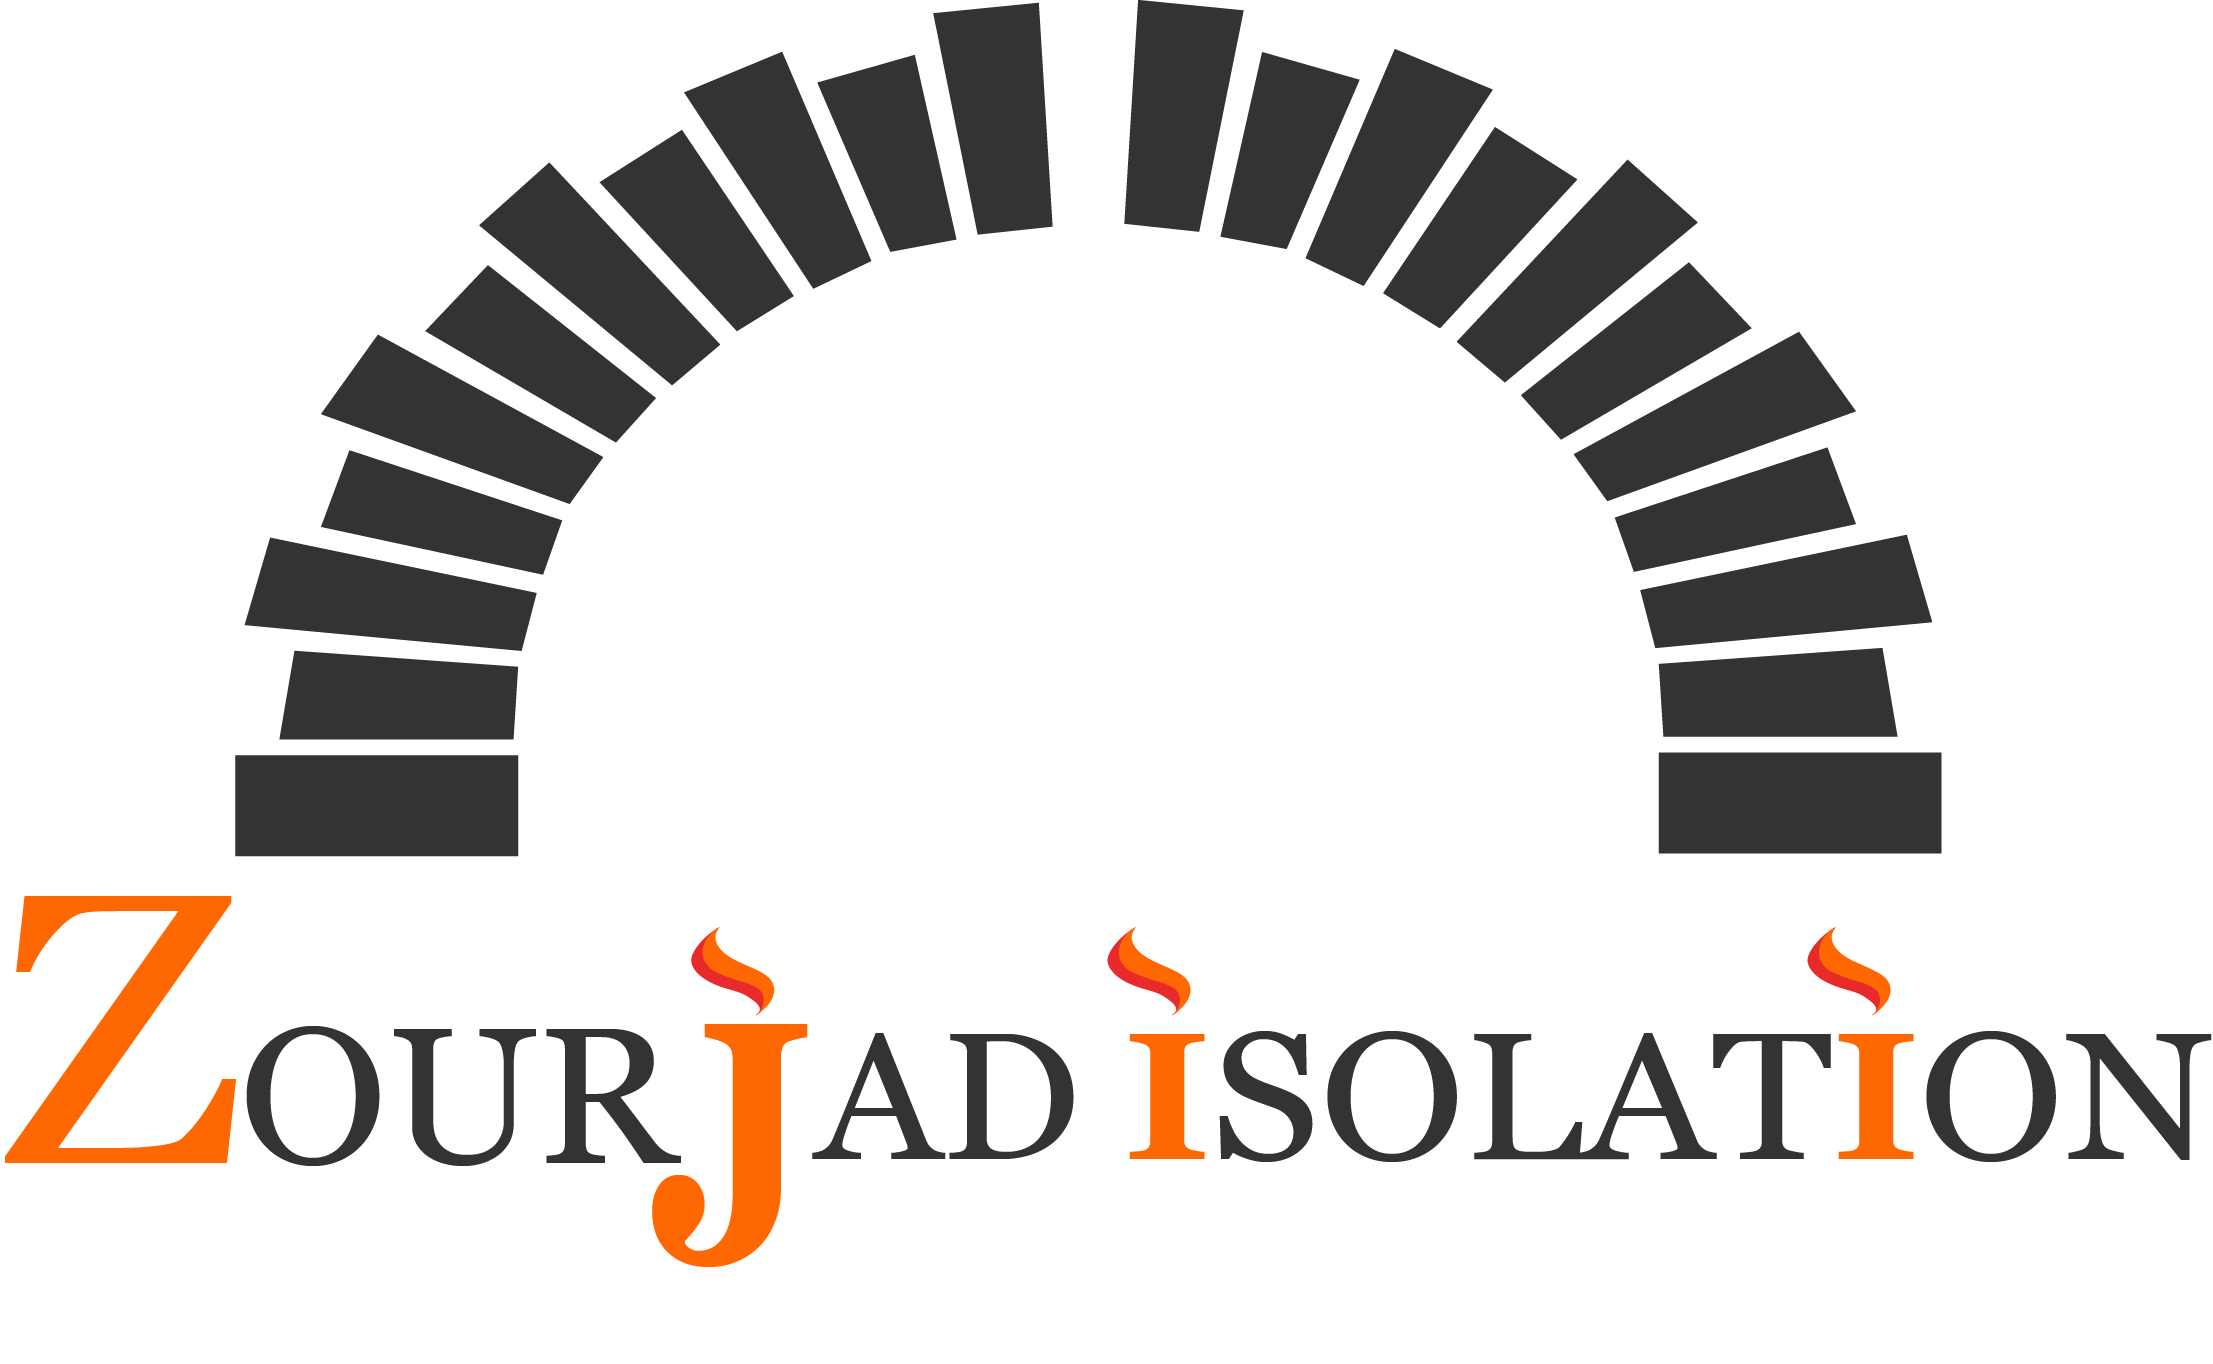 Zourjad isolation